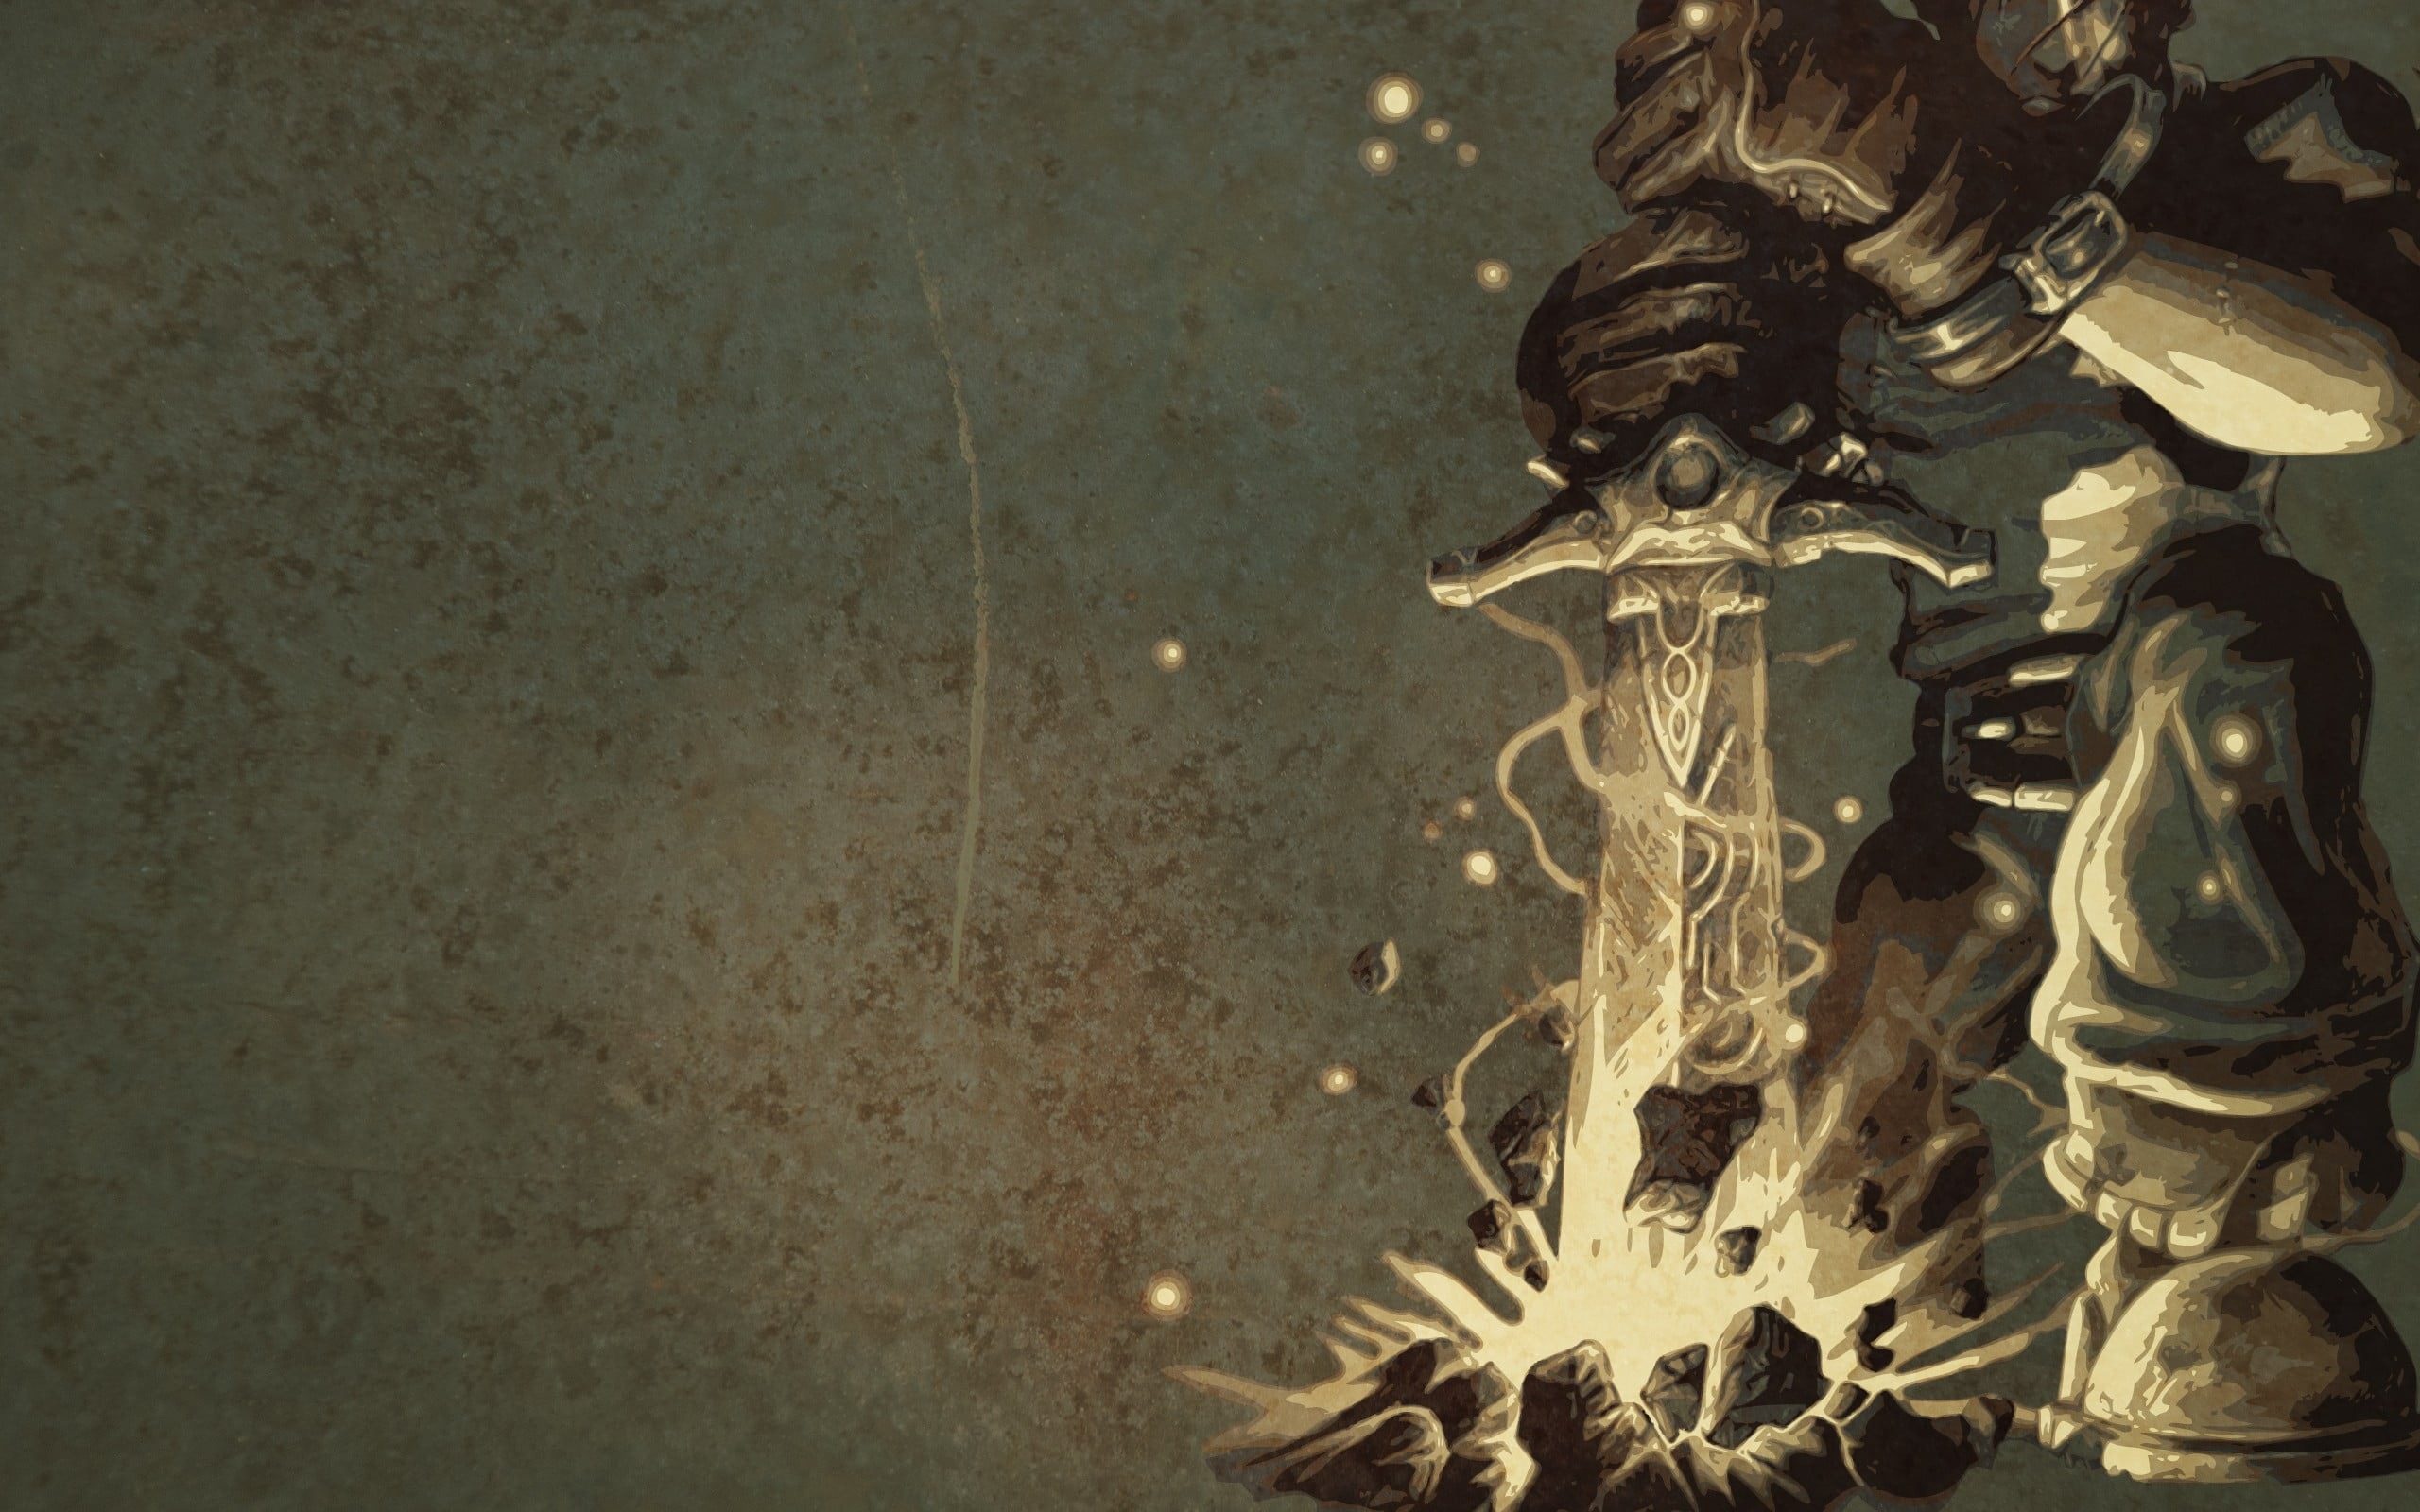 Man Holding Sword Digital Wallpaper Video Games Fable Fable